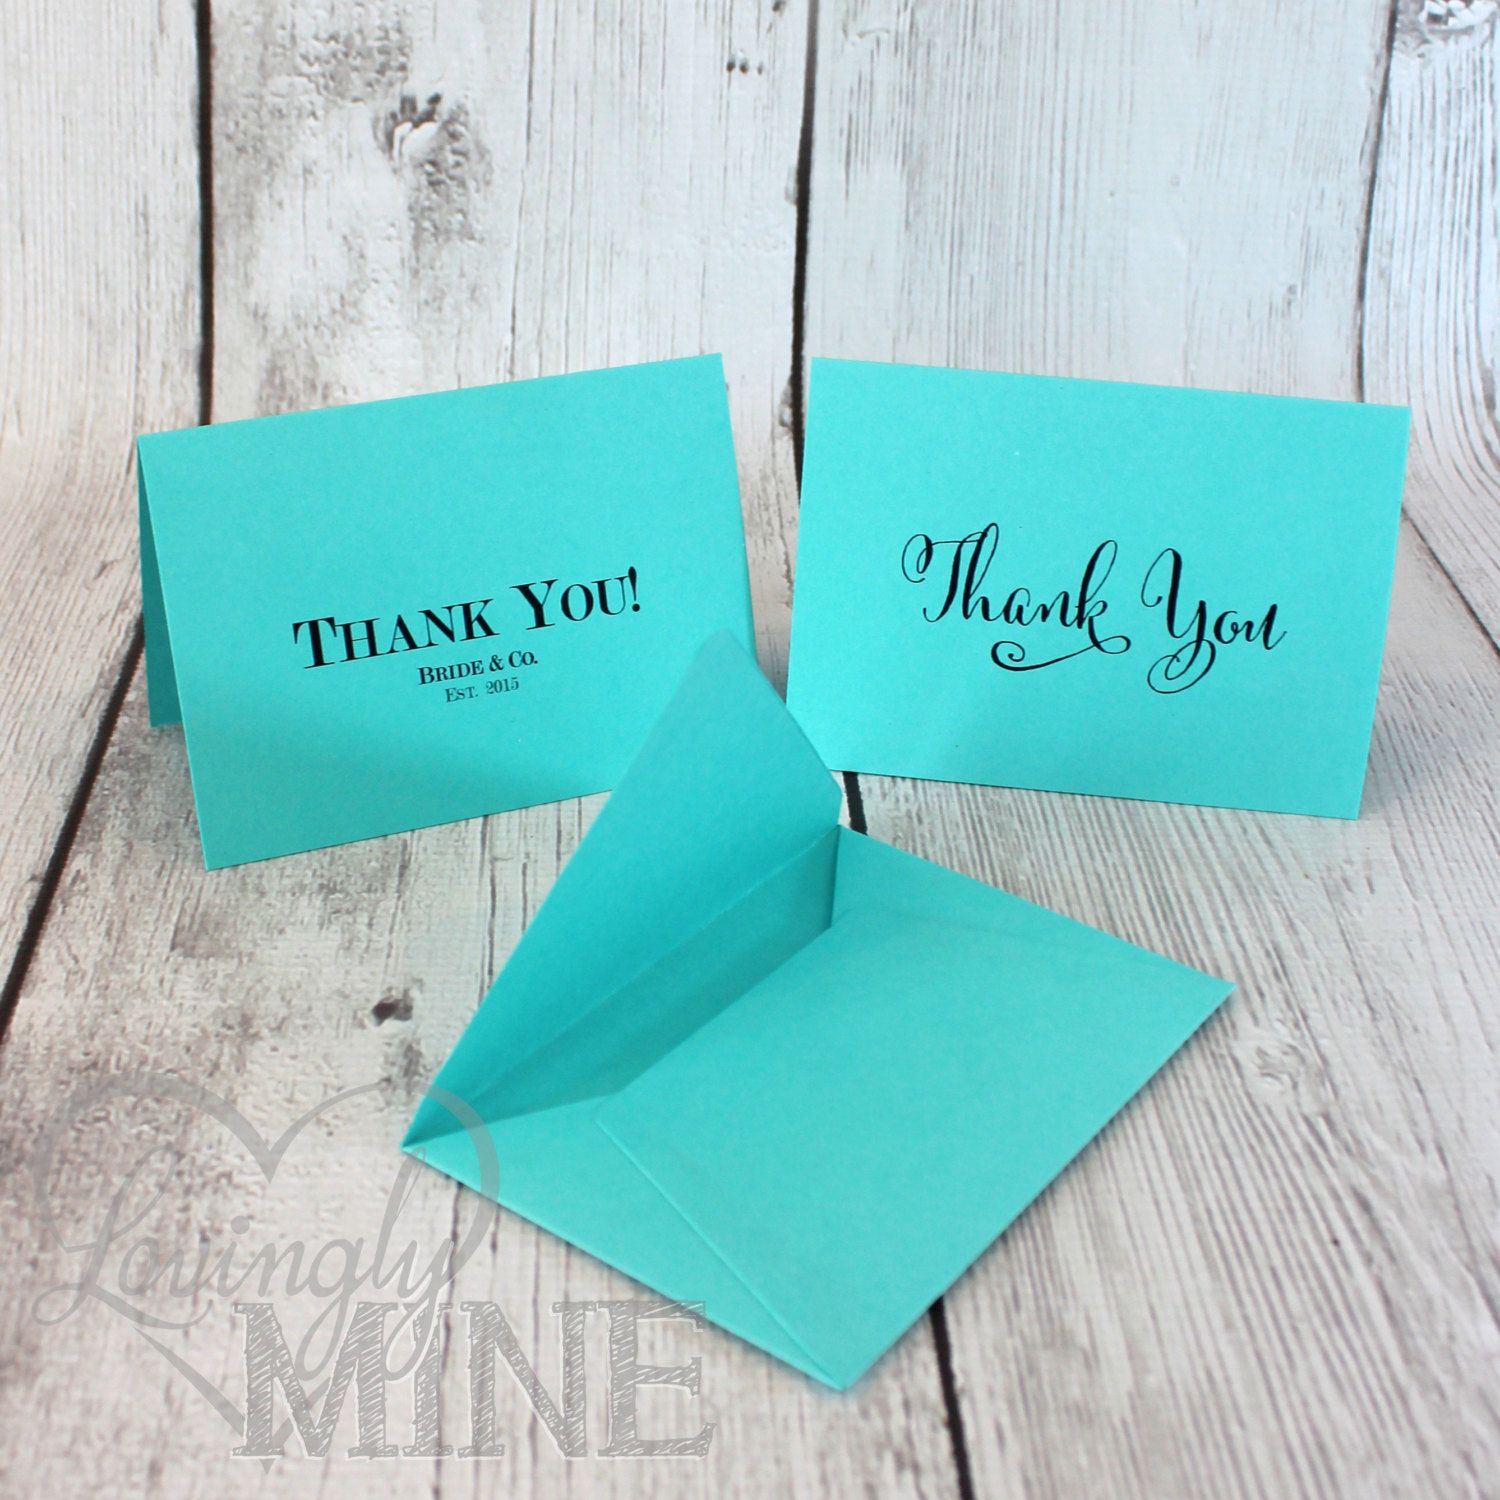 5e2d4805eac Tiffany & Co Inspired Thank You Cards with Matching Envelopes - Set of 10  by LovinglyMine on Etsy